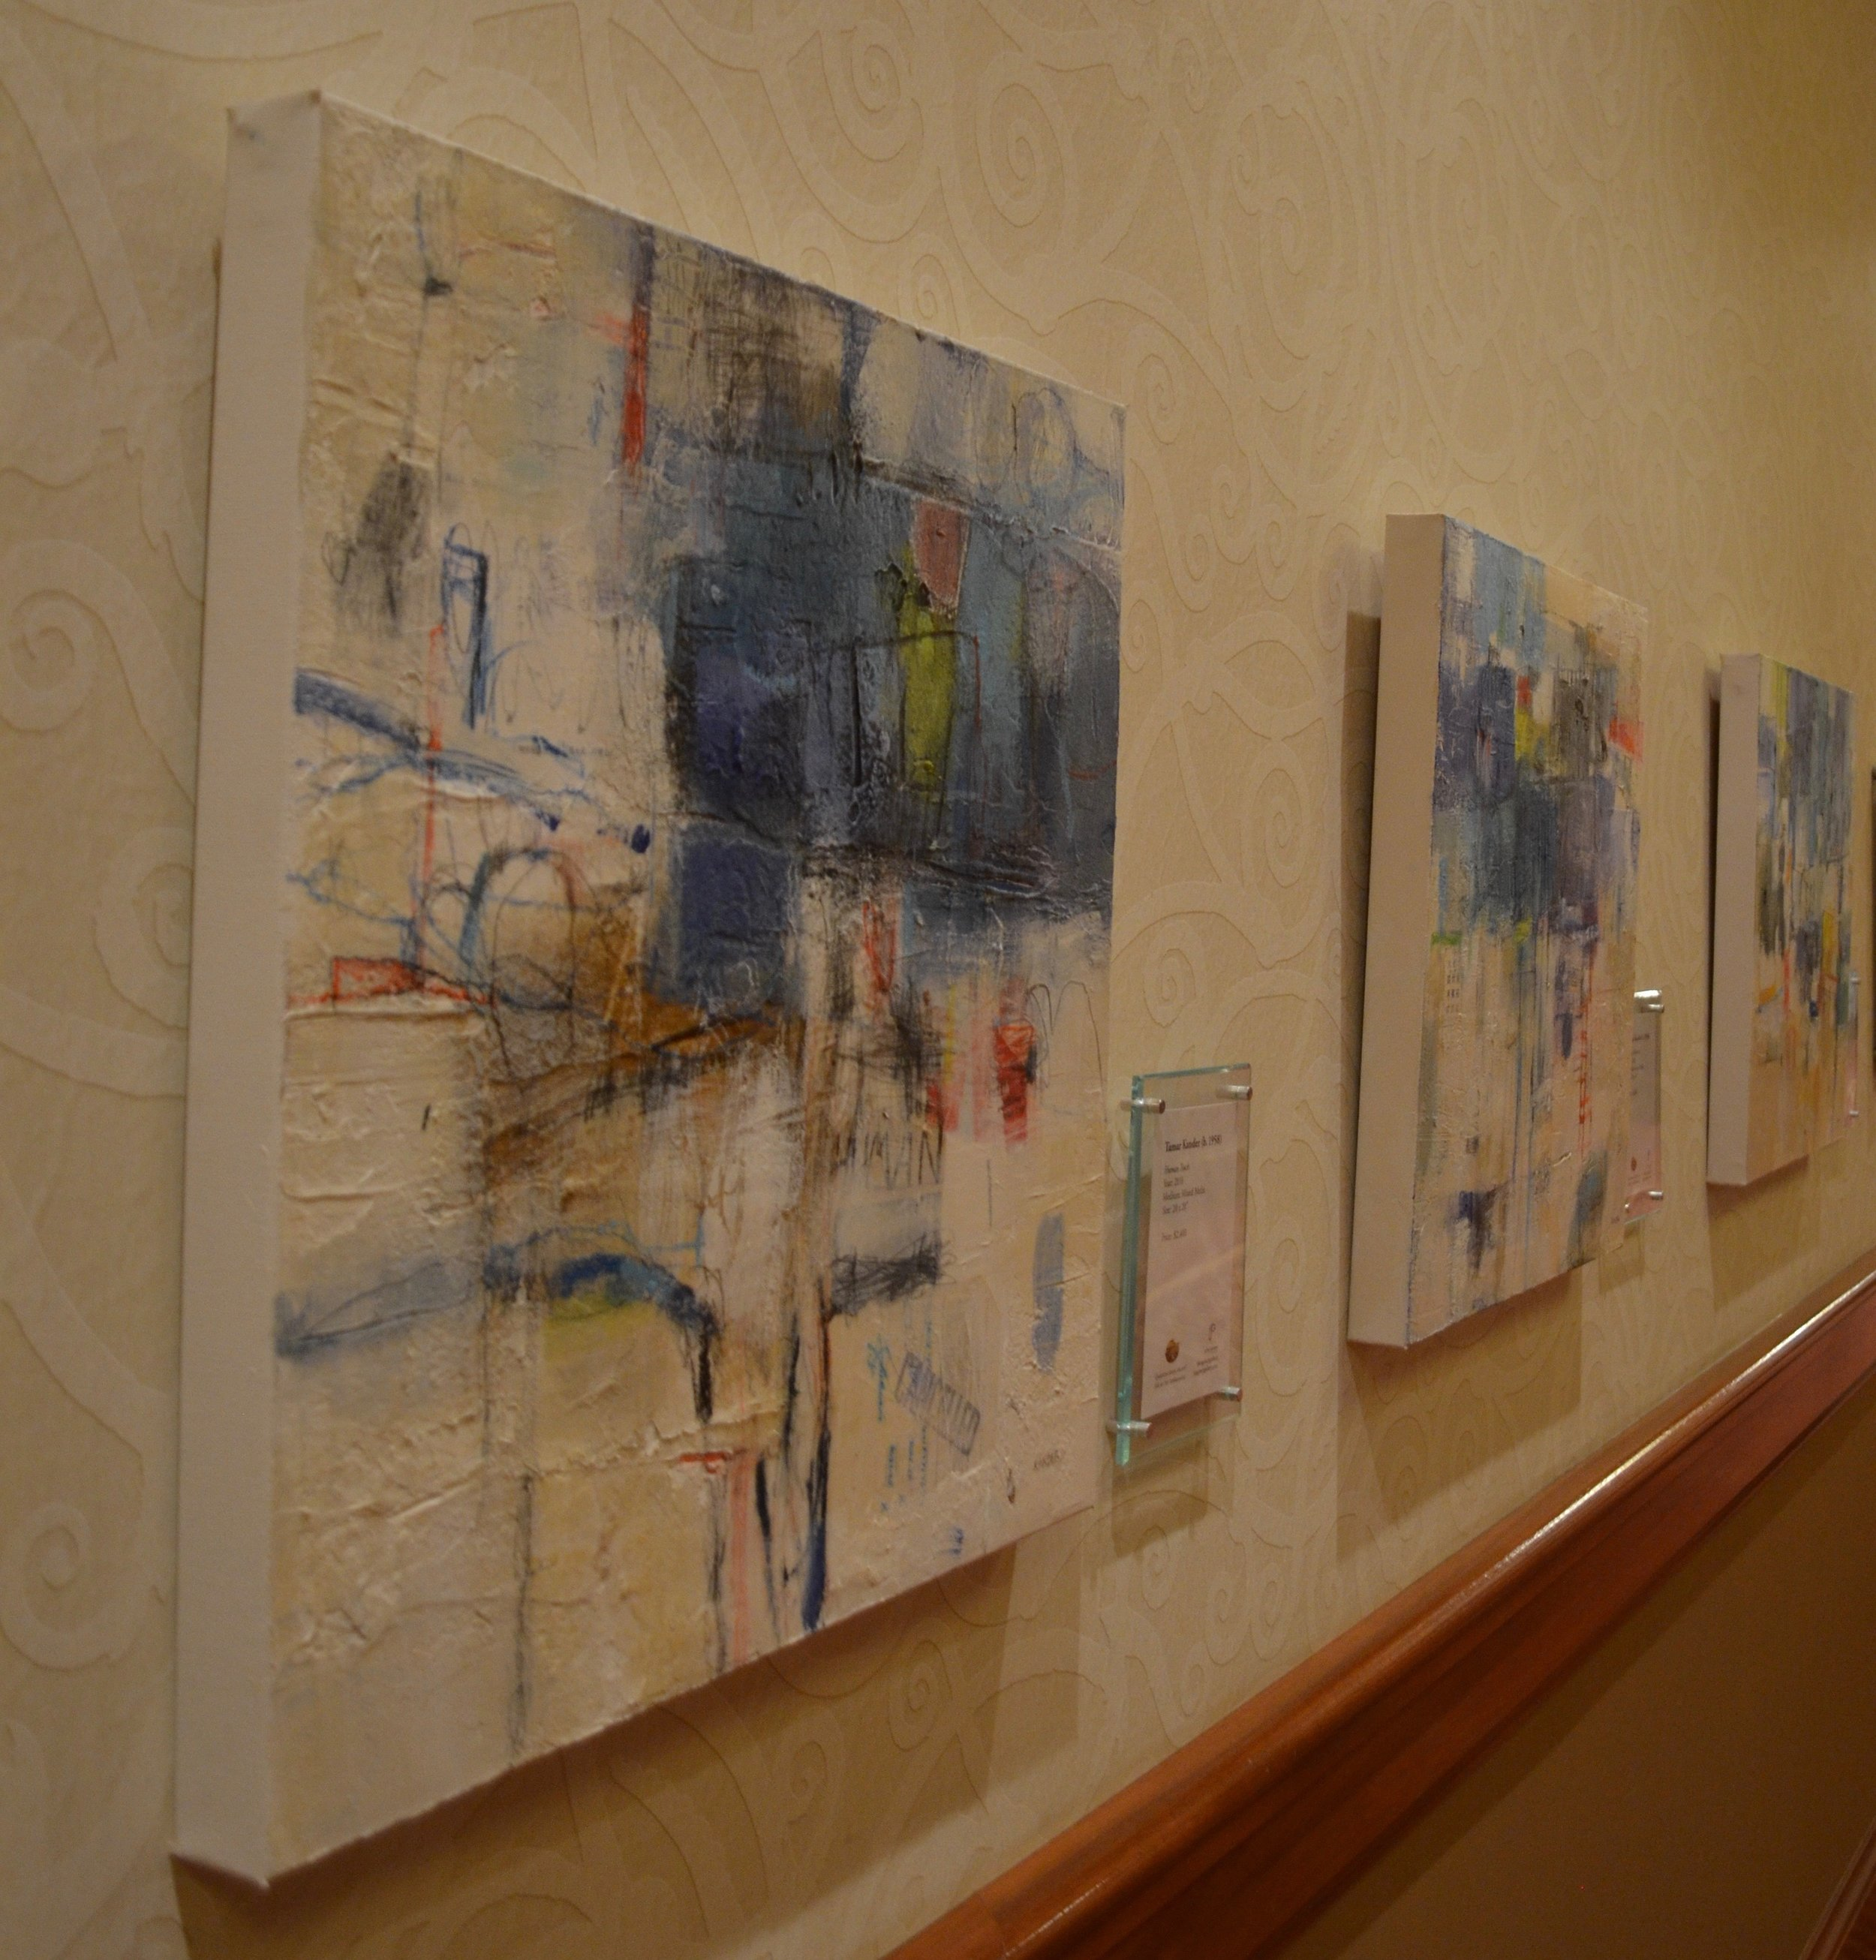 mixed media on canvas by tamar kander, human touch, additional install images